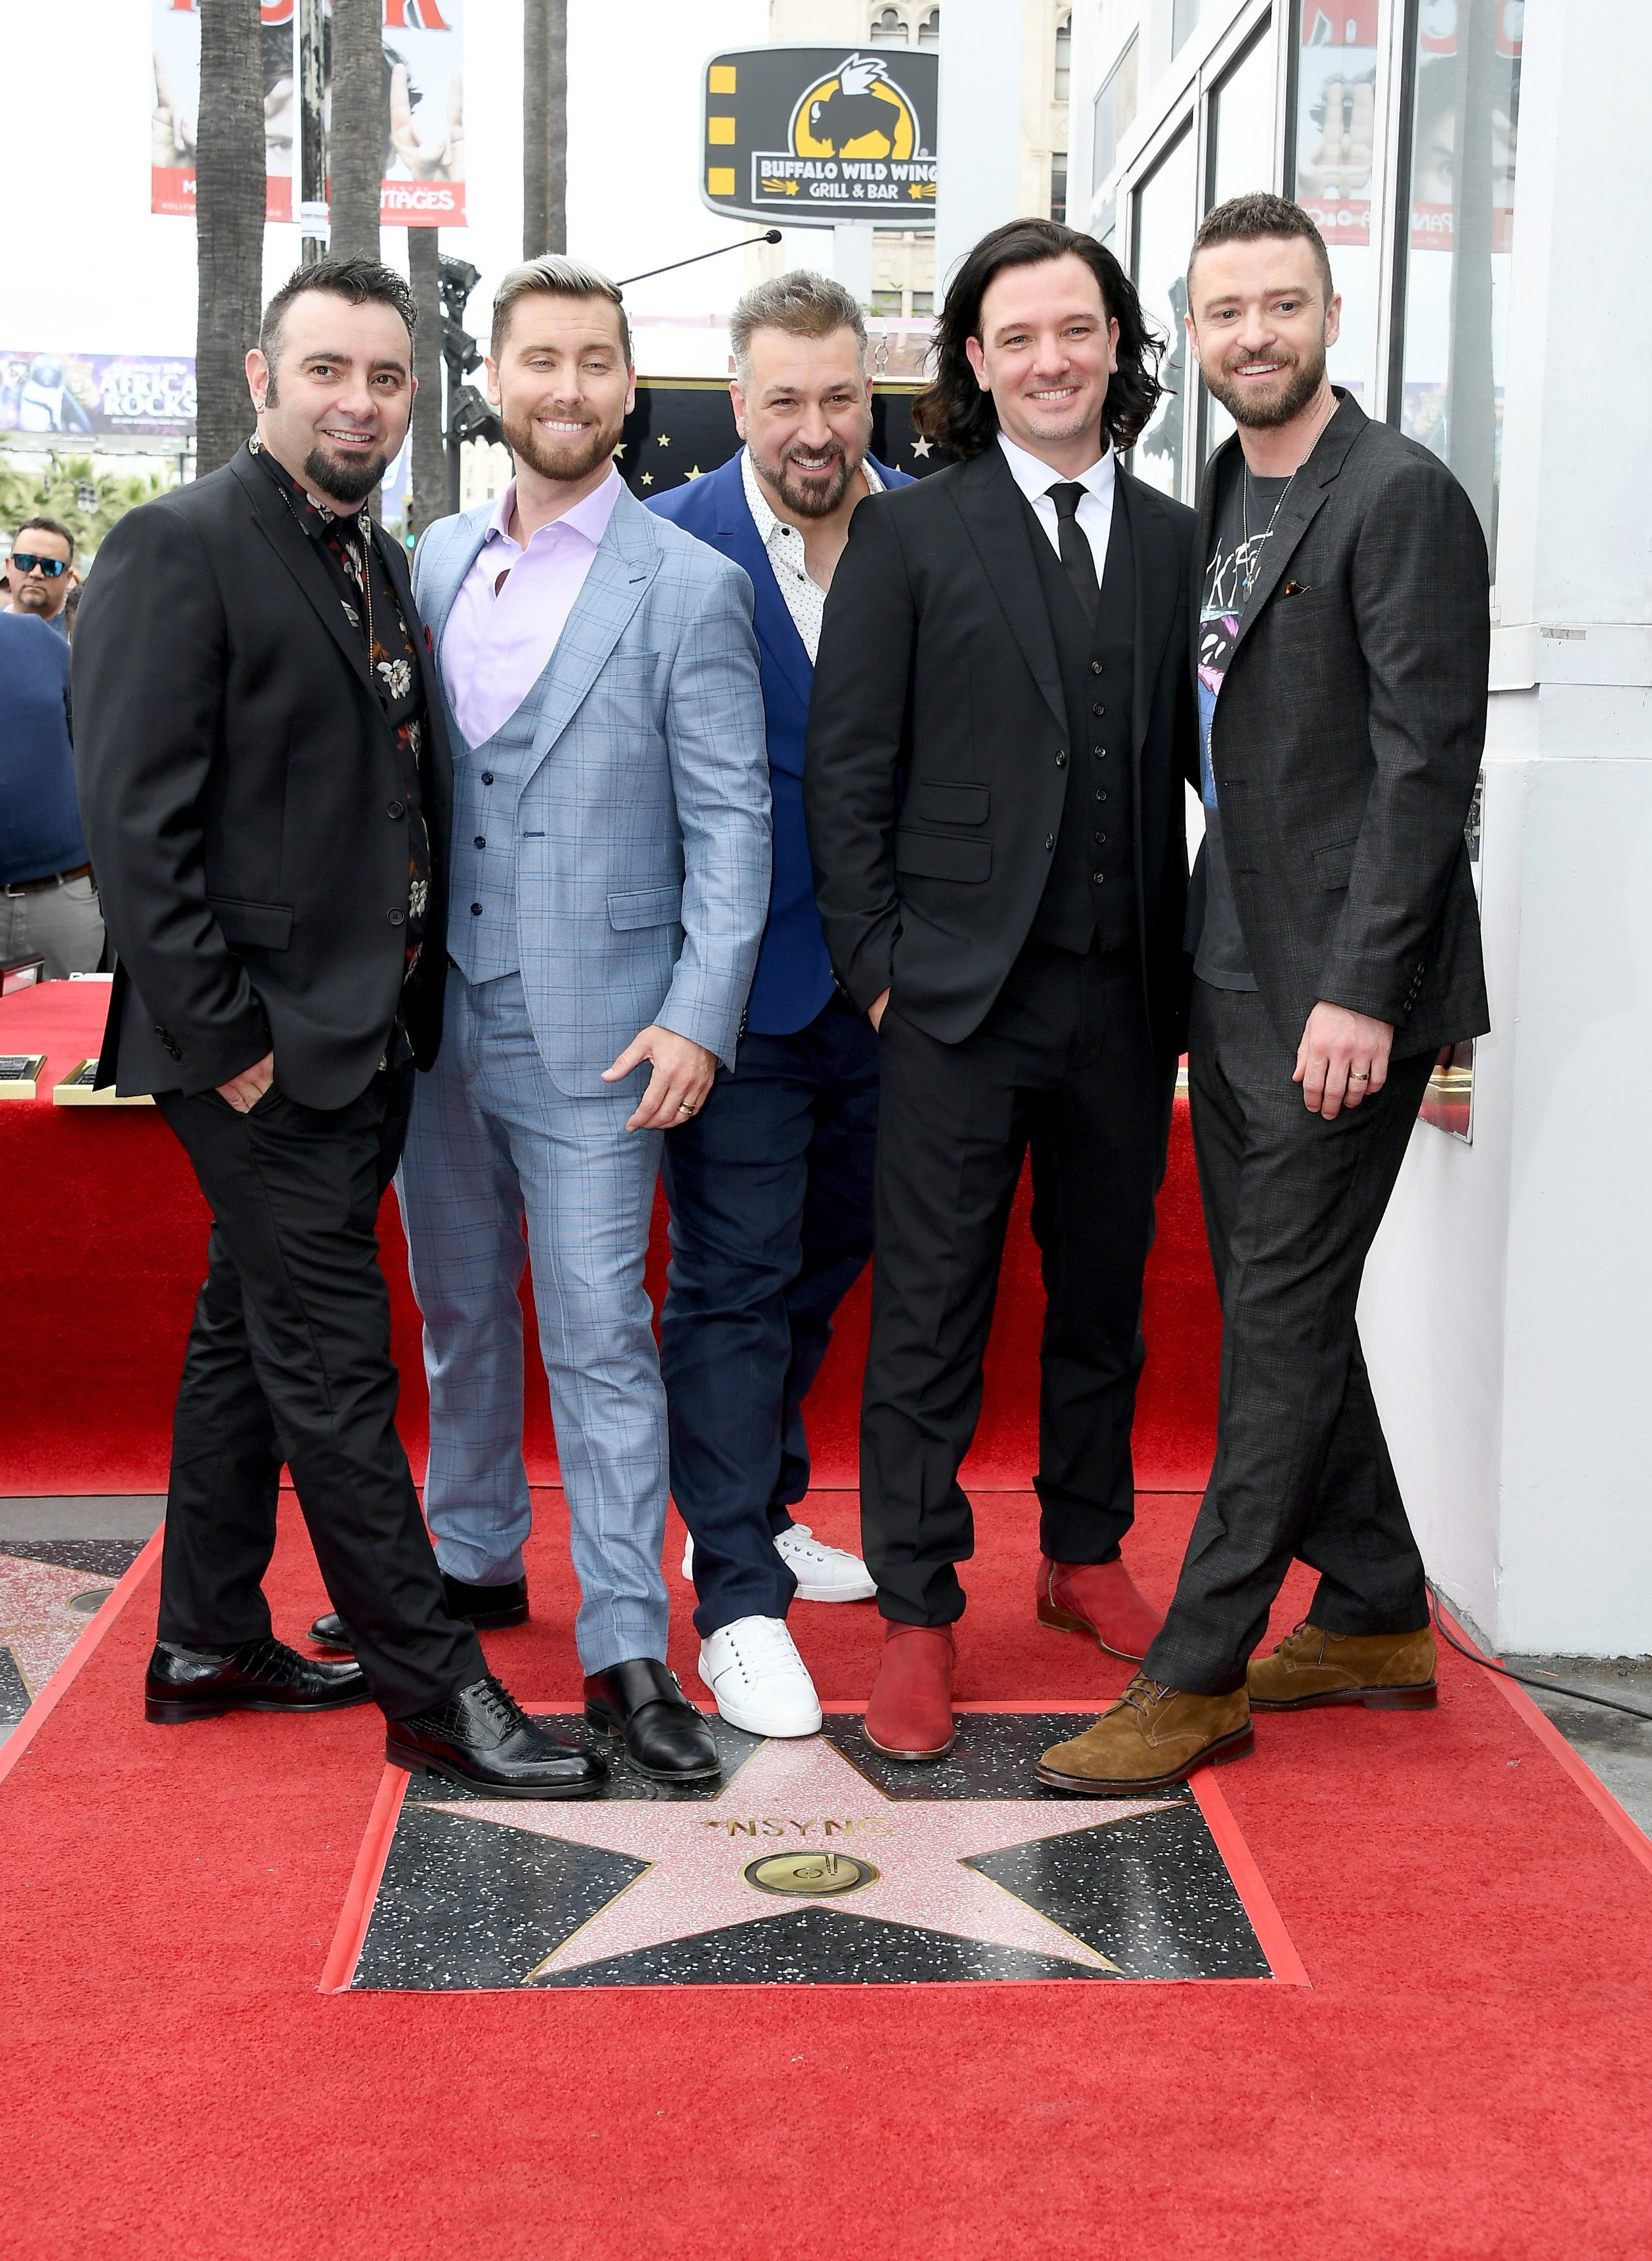 Nsync Reunites To Receive Star On The Hollywood Walk Of Fame